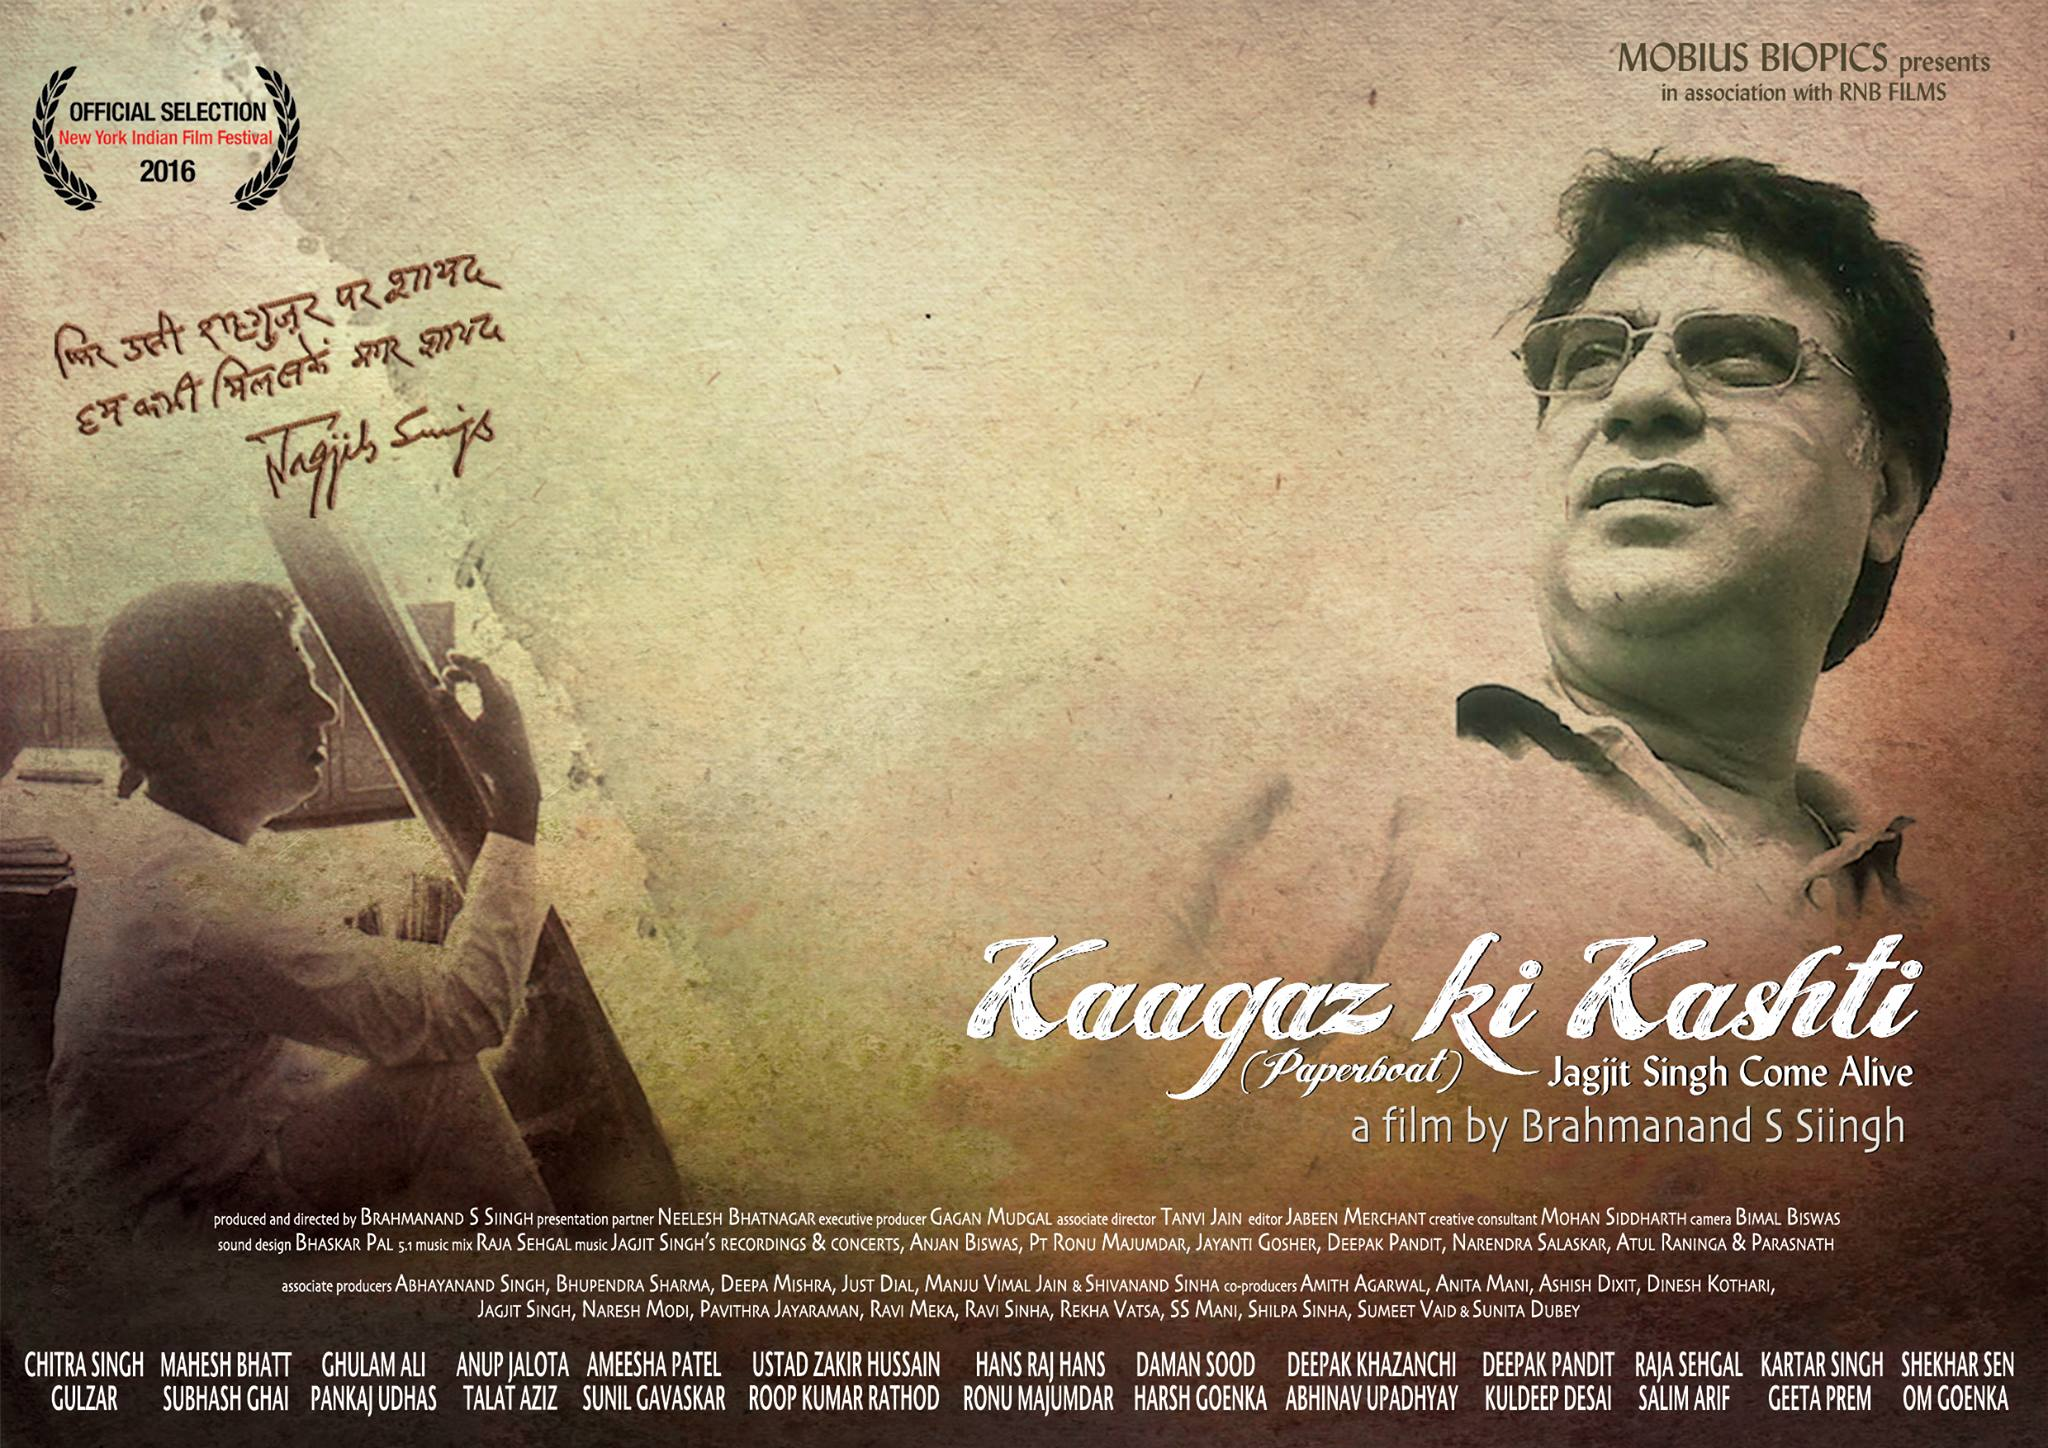 Brahmanand Singh-Kaagaz Ki Kashti-Pancham Unmixed -Documentary-Jagjit Singh-Film-Interview-Director-Interview-Review-Bollywoodirect